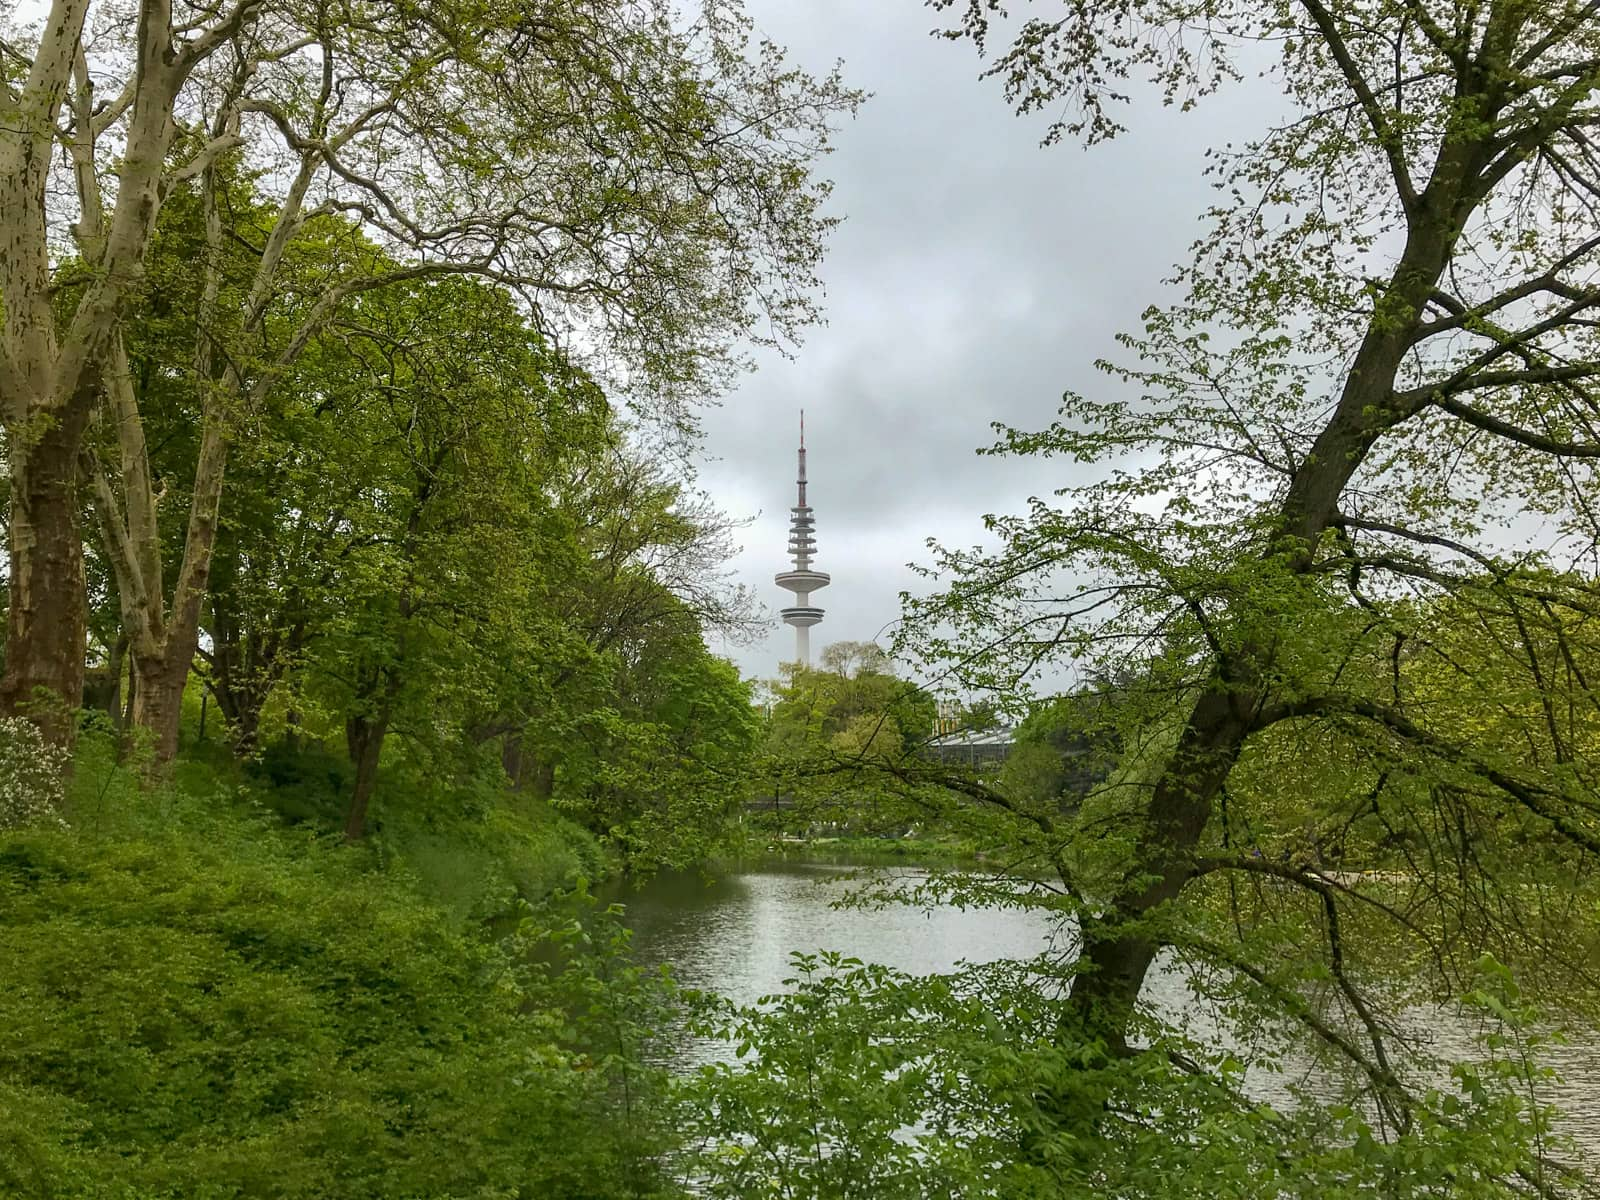 The Hamburg Hertz Tower in Hamburg, Germany. It's a telecommunications tower as seen from between trees inside of a park. It's a very cloudy day.